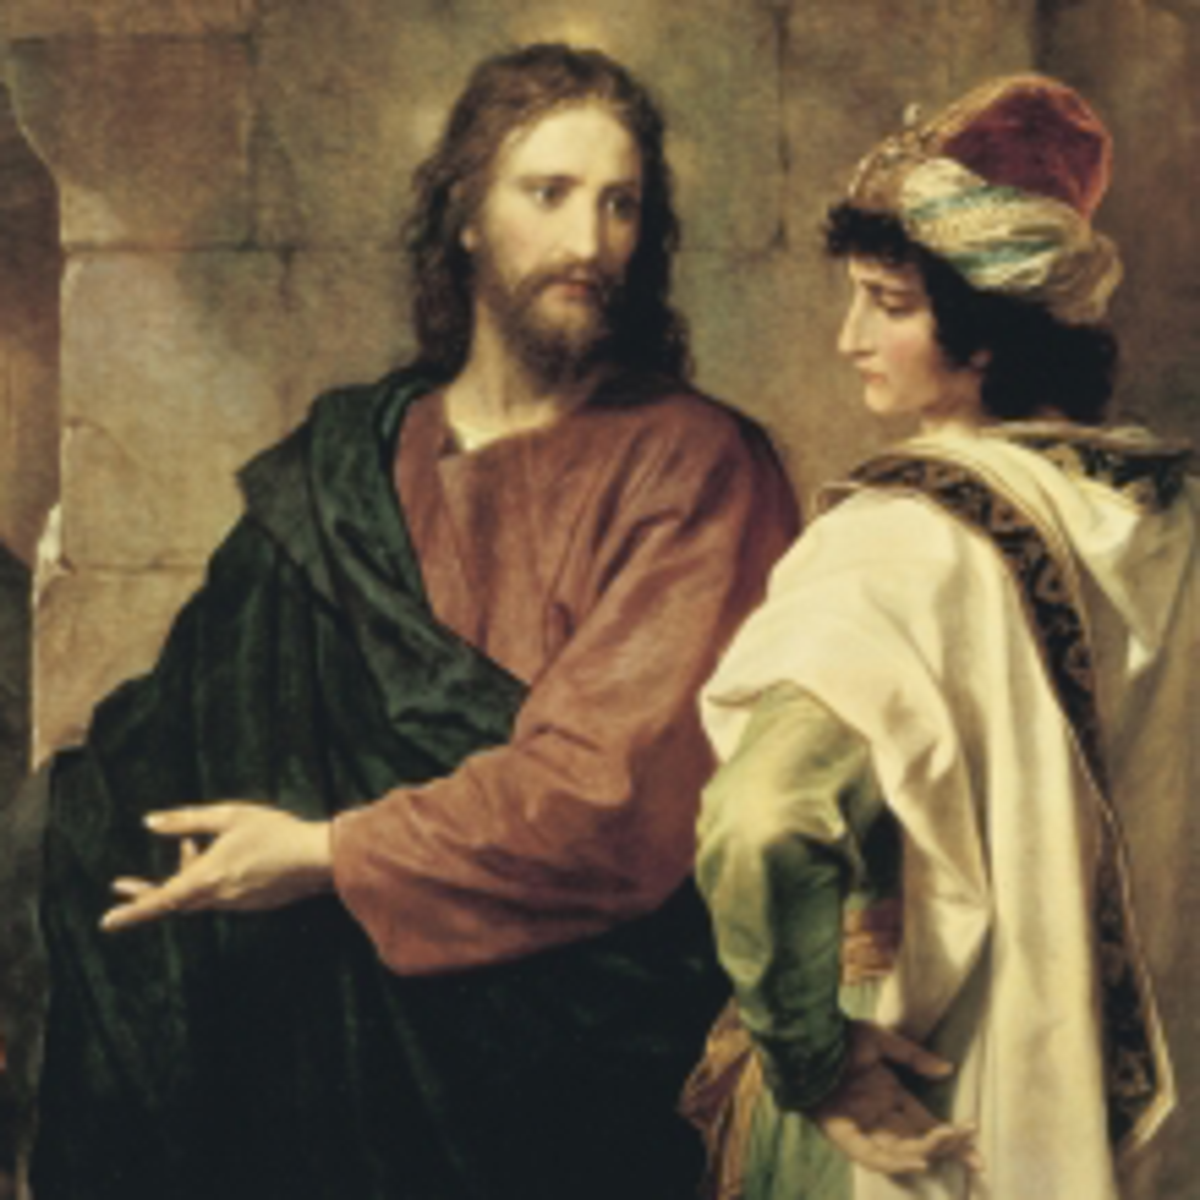 Jesus and rich man